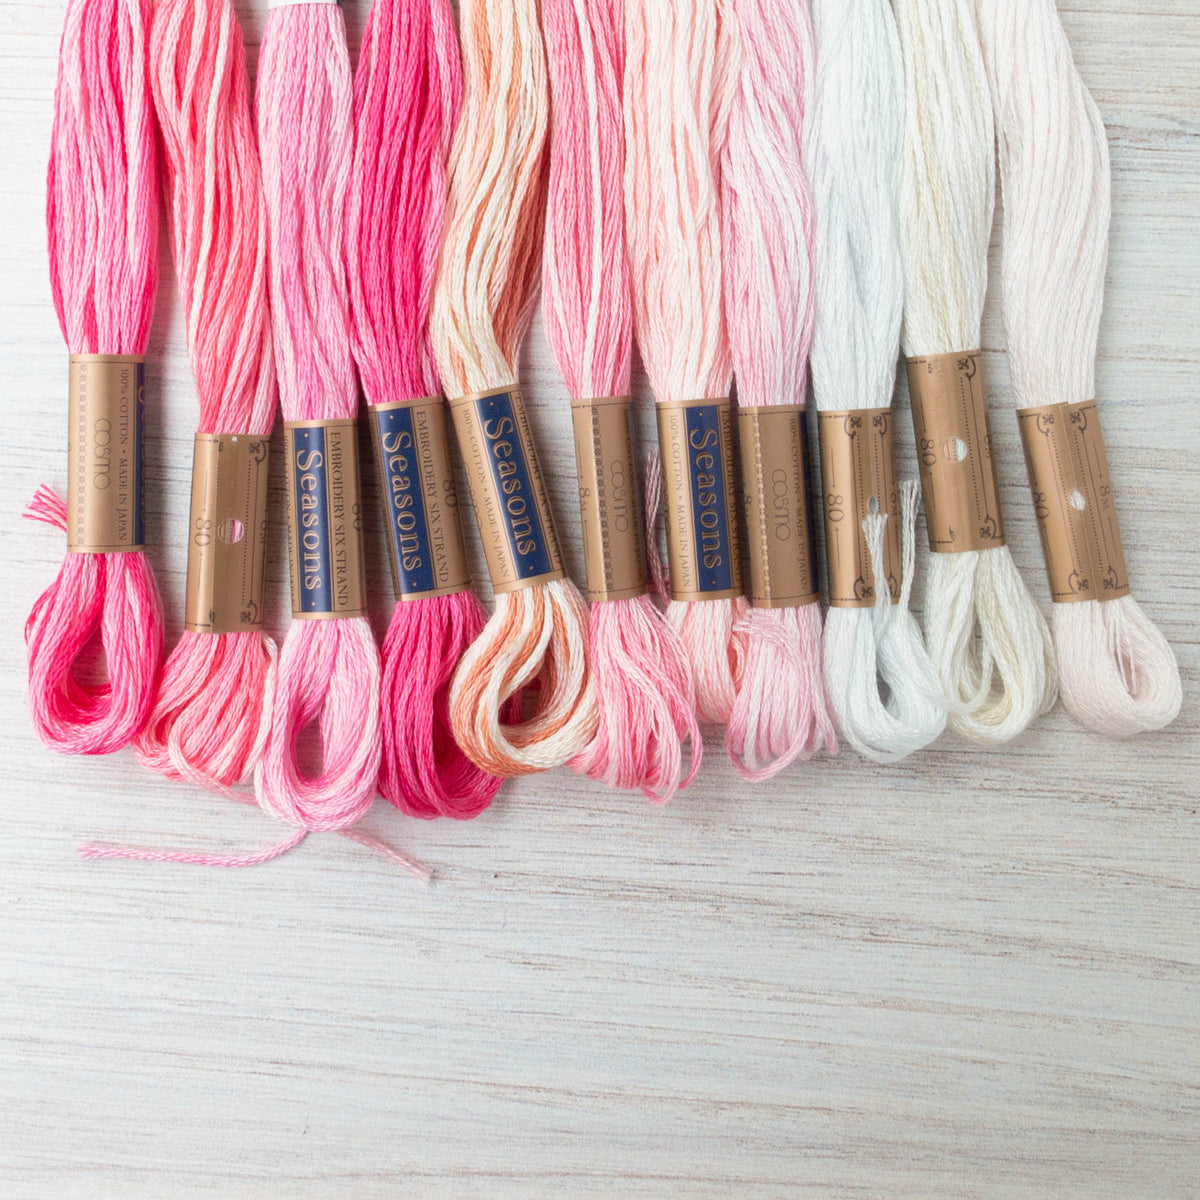 Cosmo Seasons Variegated Embroidery Floss (8001 - 8011)